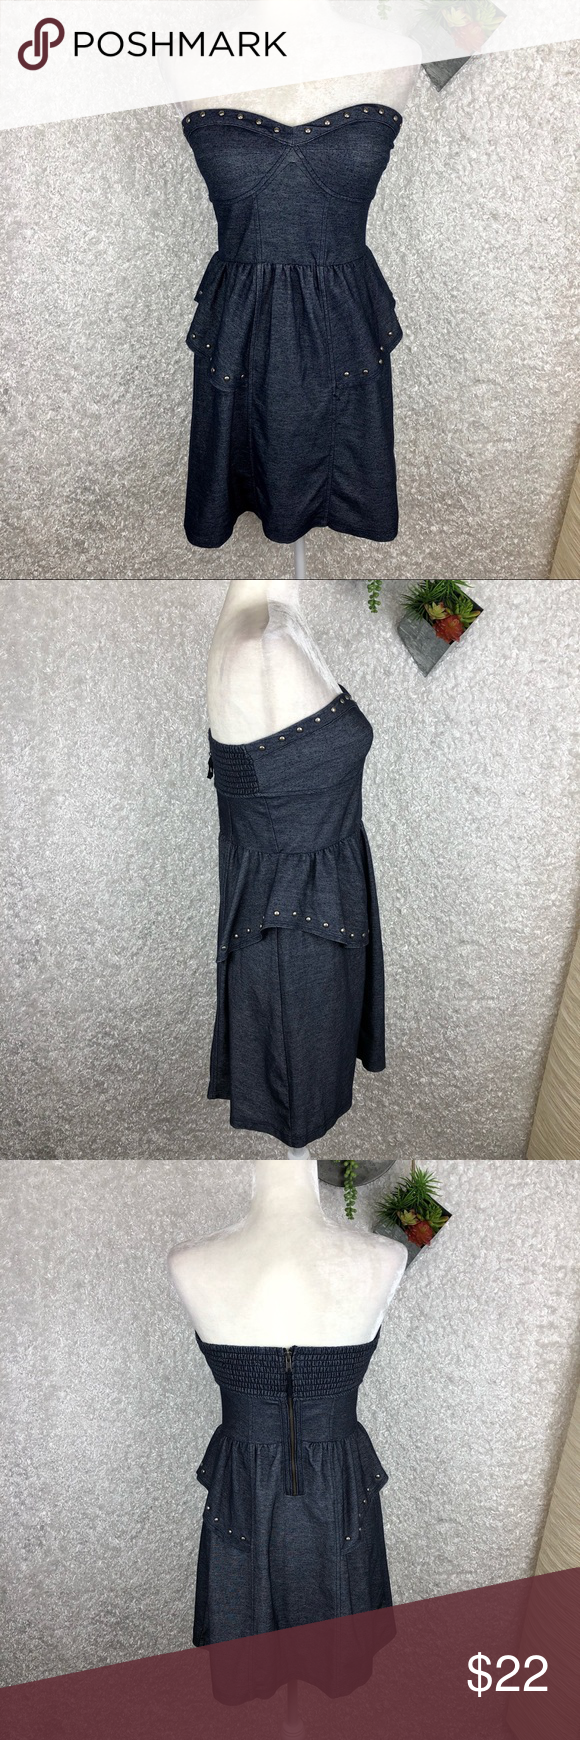 5f1459468a3 AEO Strapless Dress